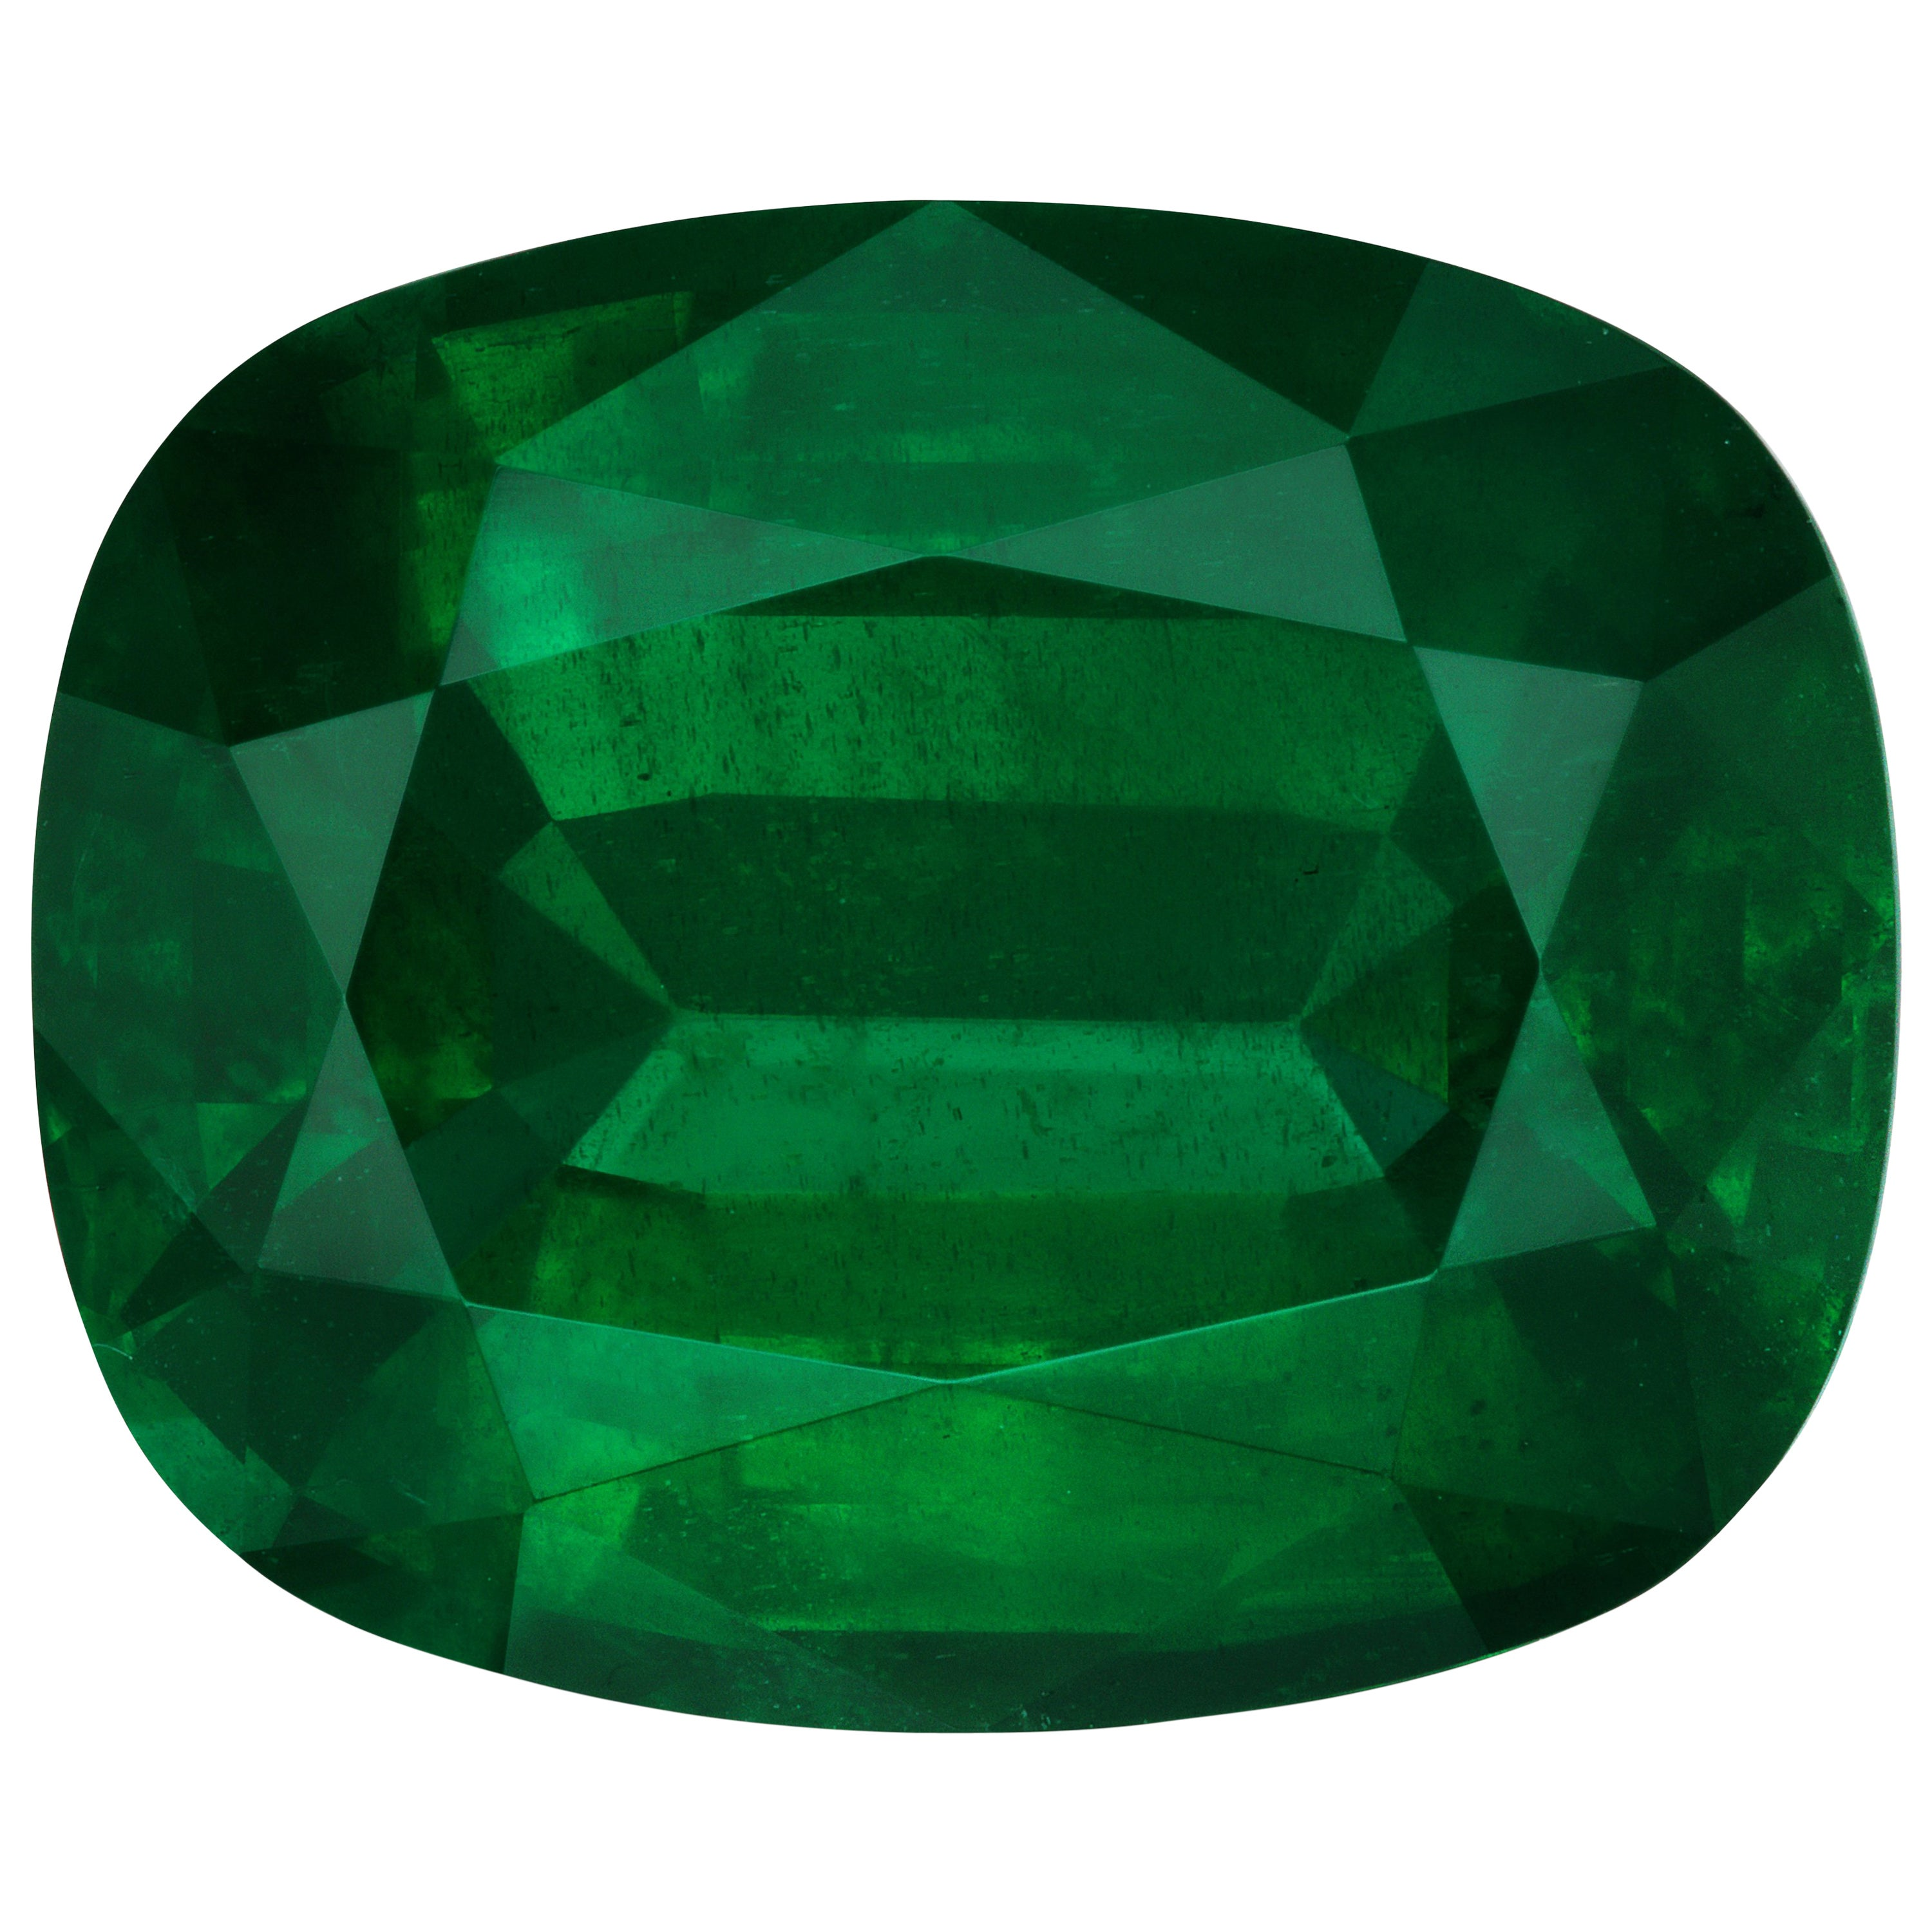 No Oil Emerald Ring Gem 16.27 Carat Certified Untreated Loose Gemstone